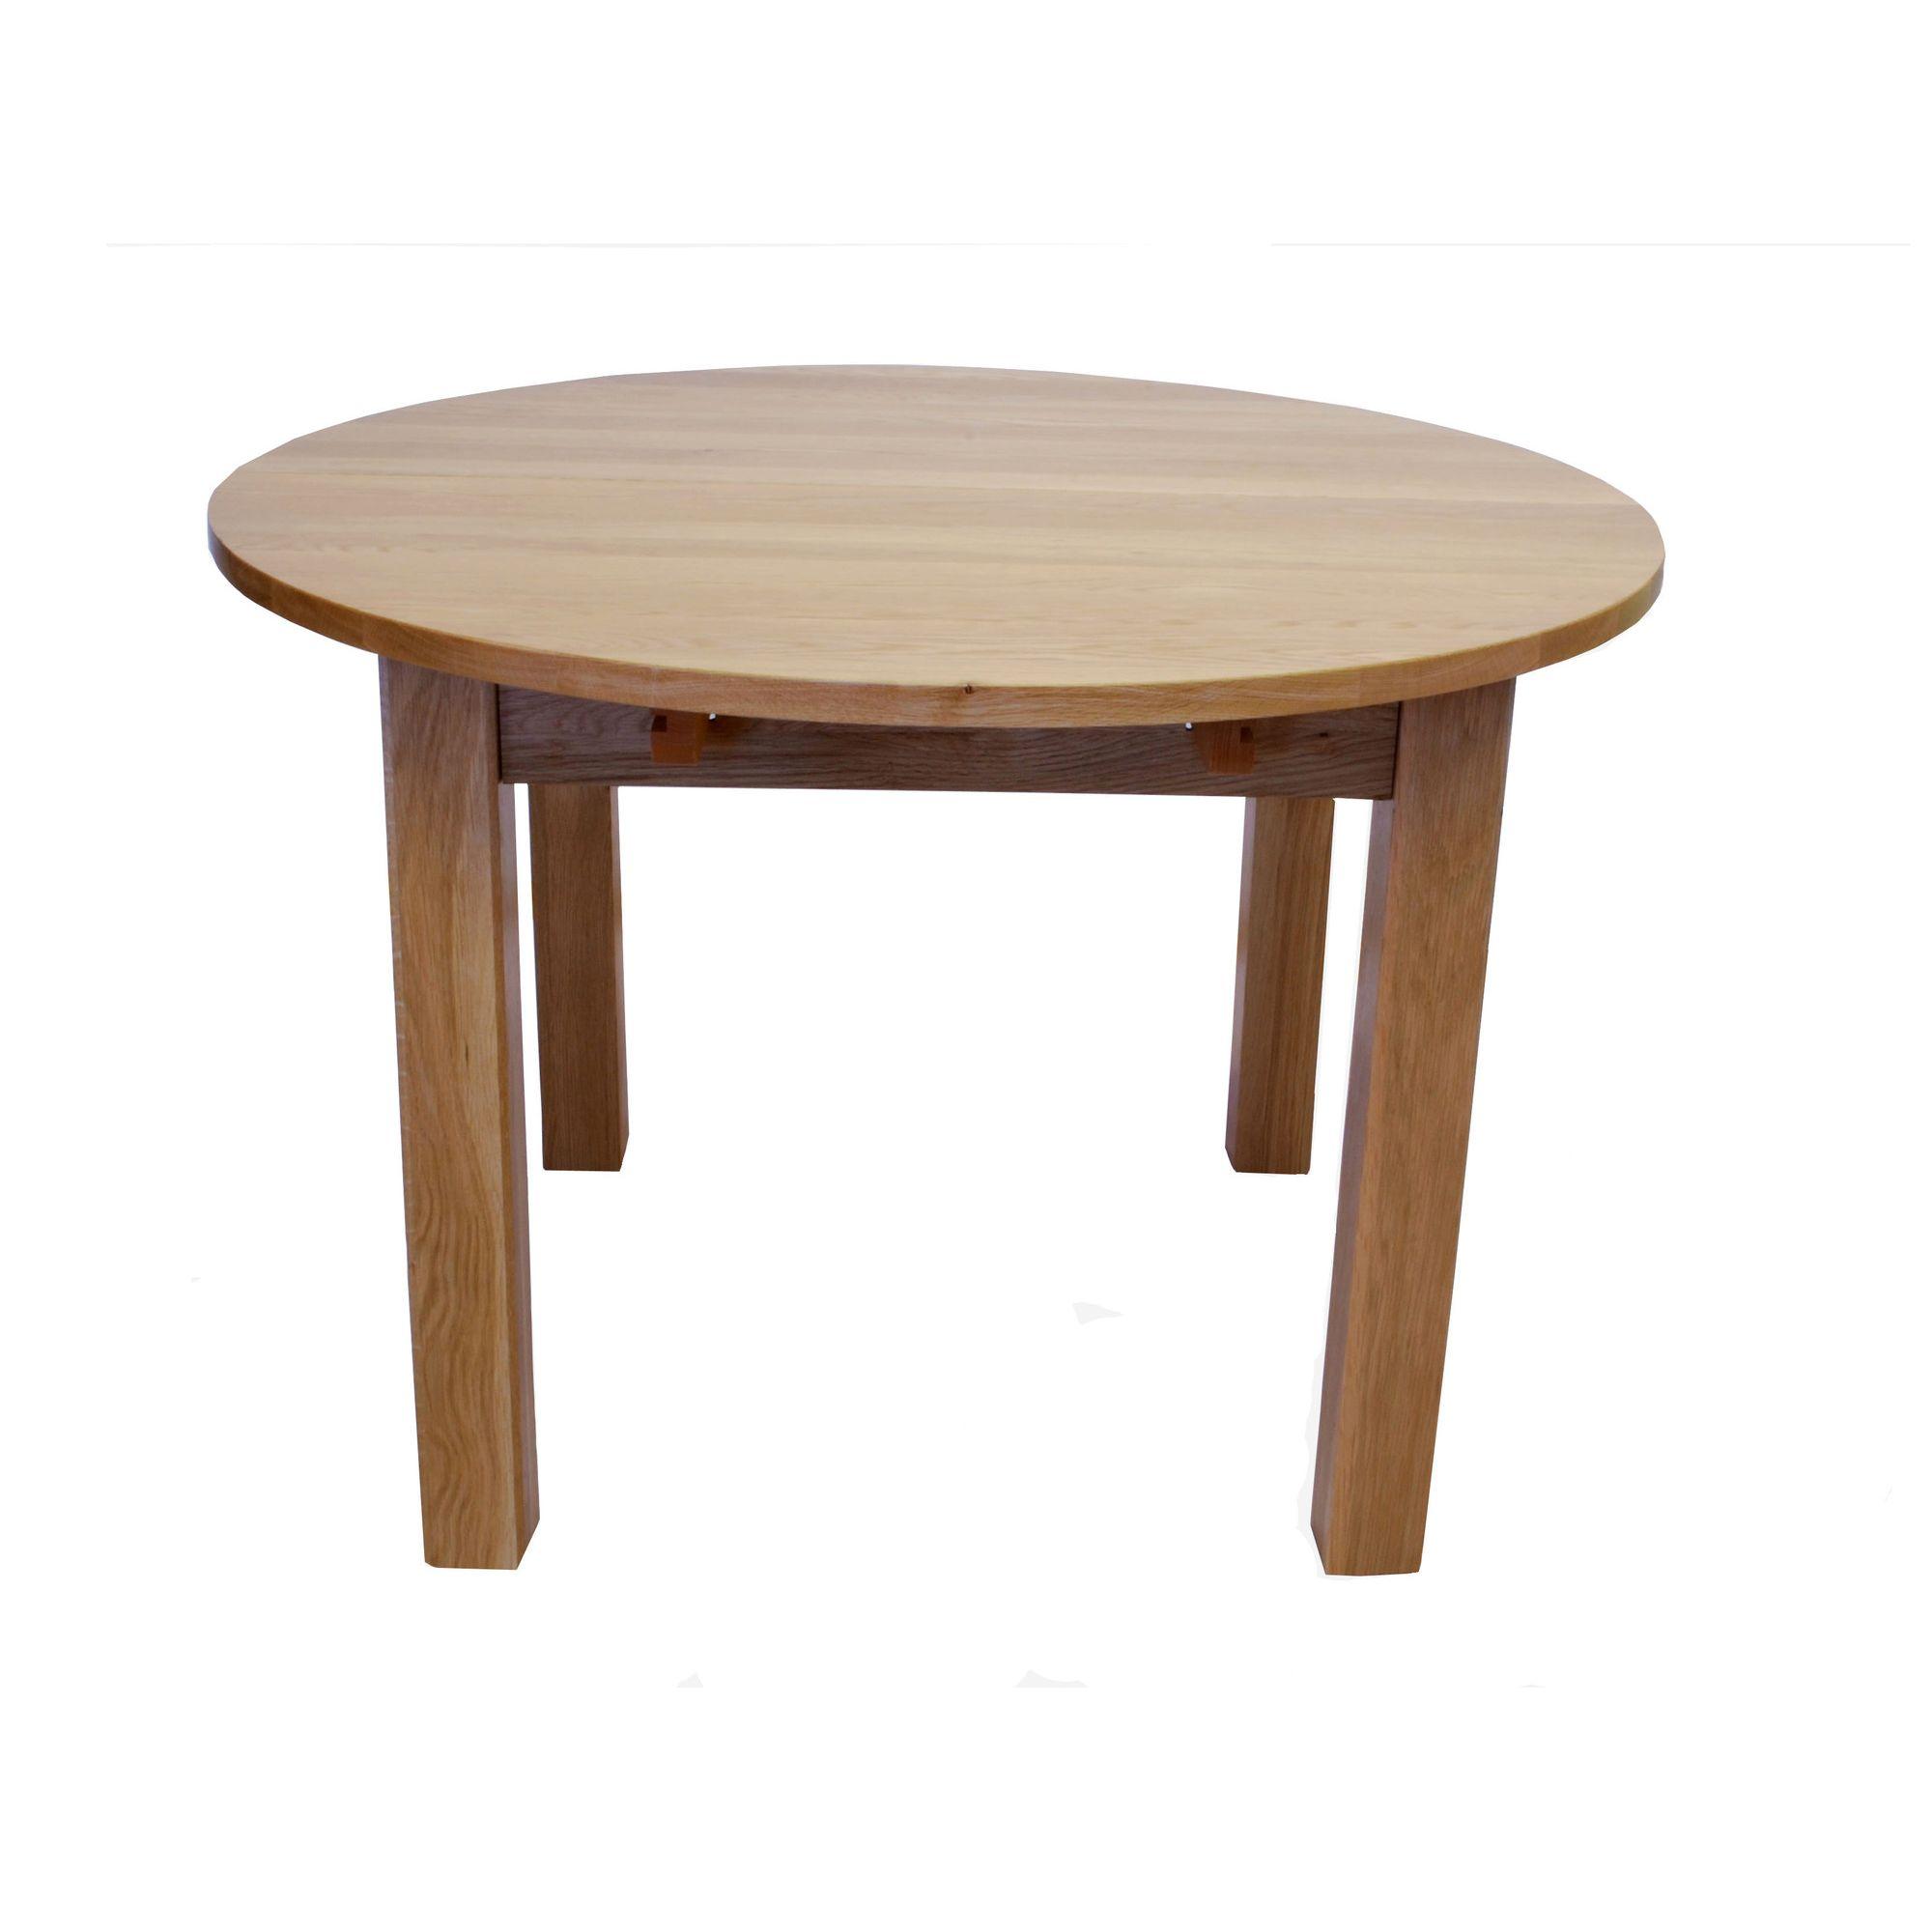 Oakinsen Balmain Round Extending Dining Table